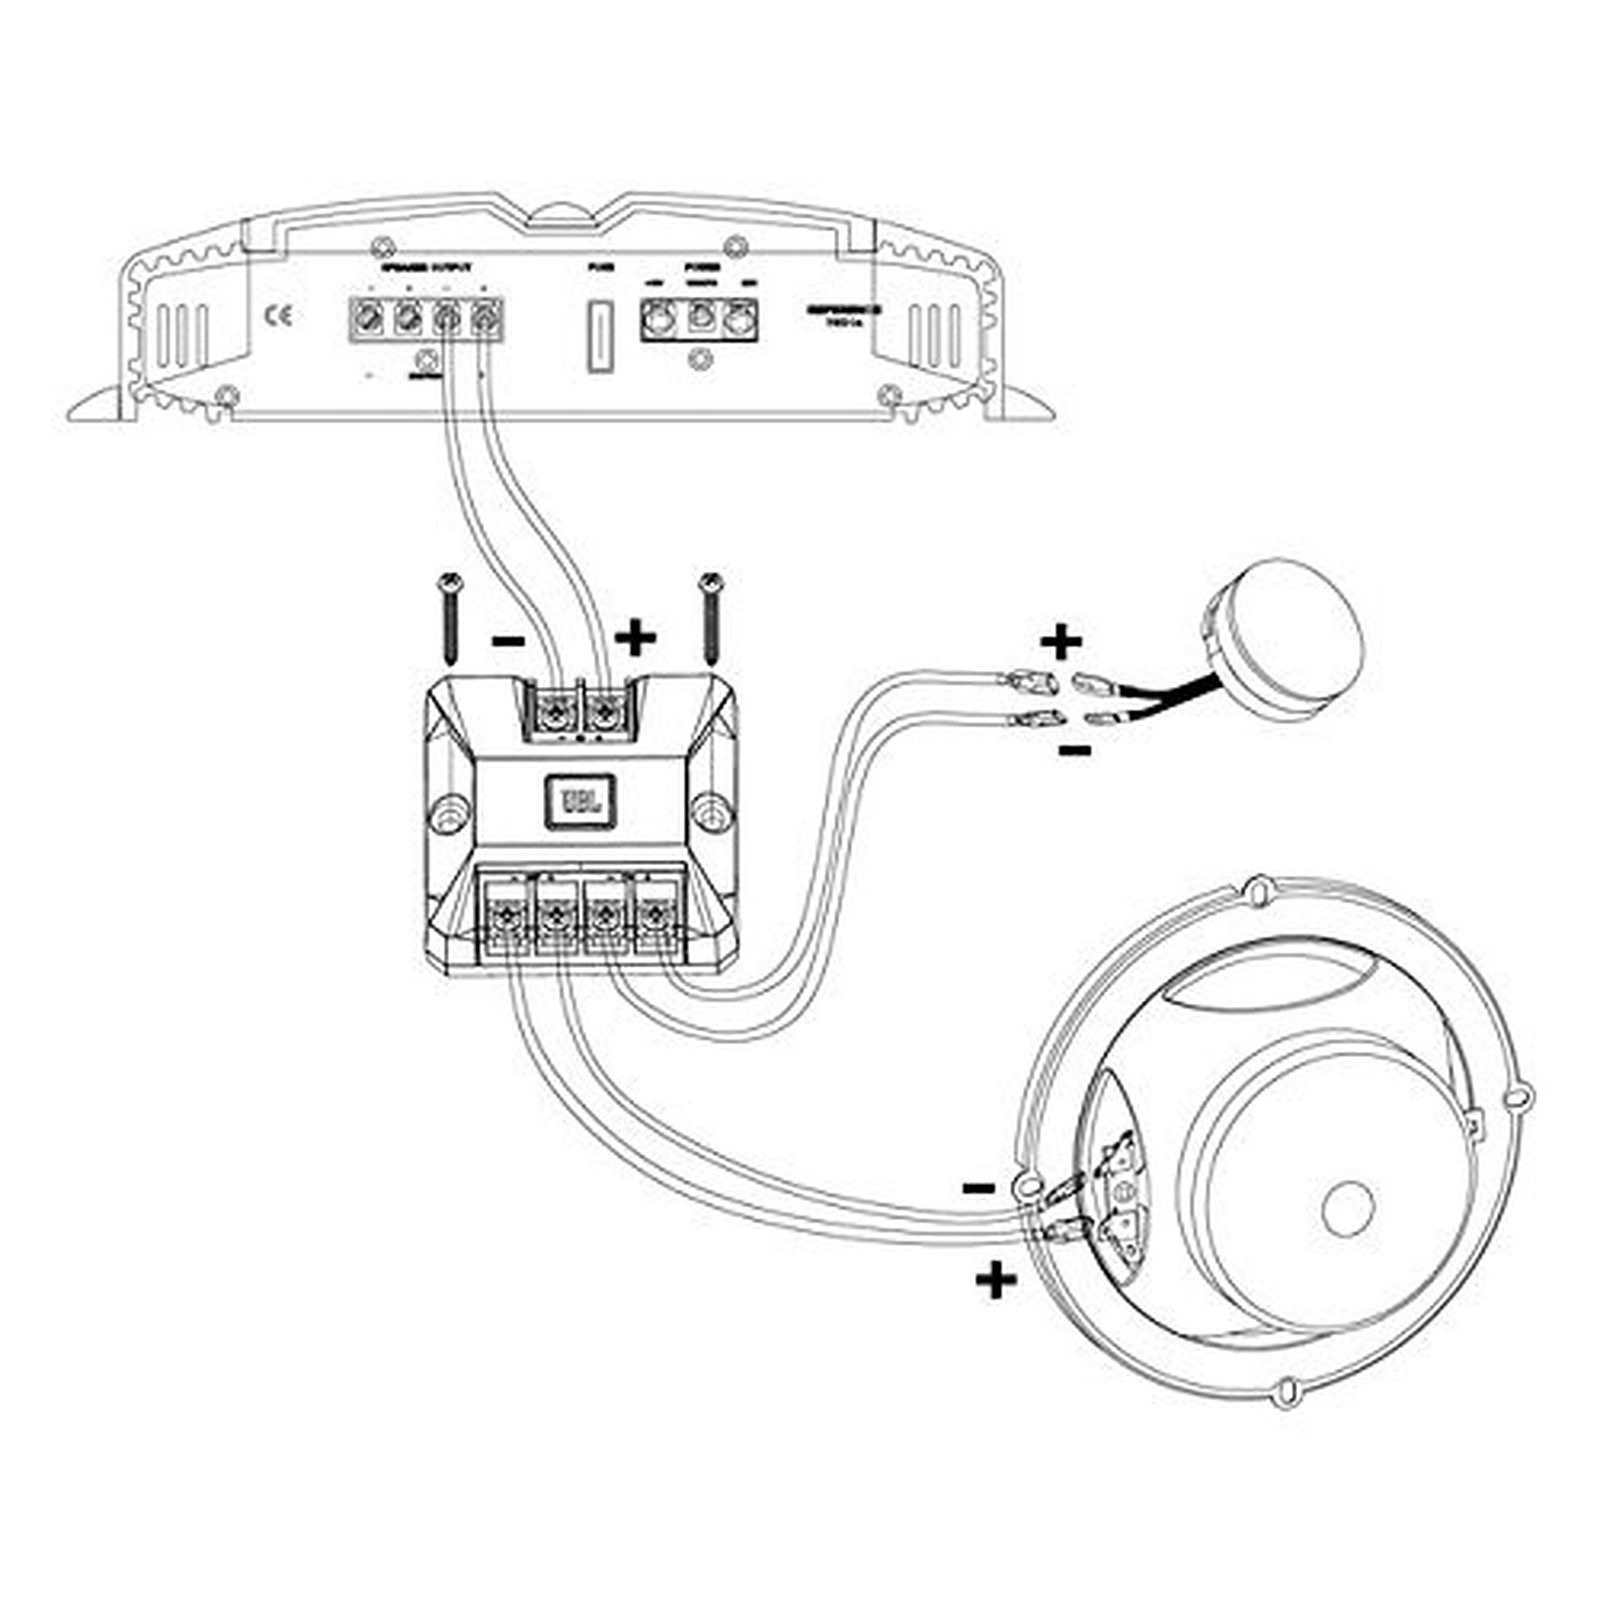 Rj14 Wiring Diagrams Cat 5